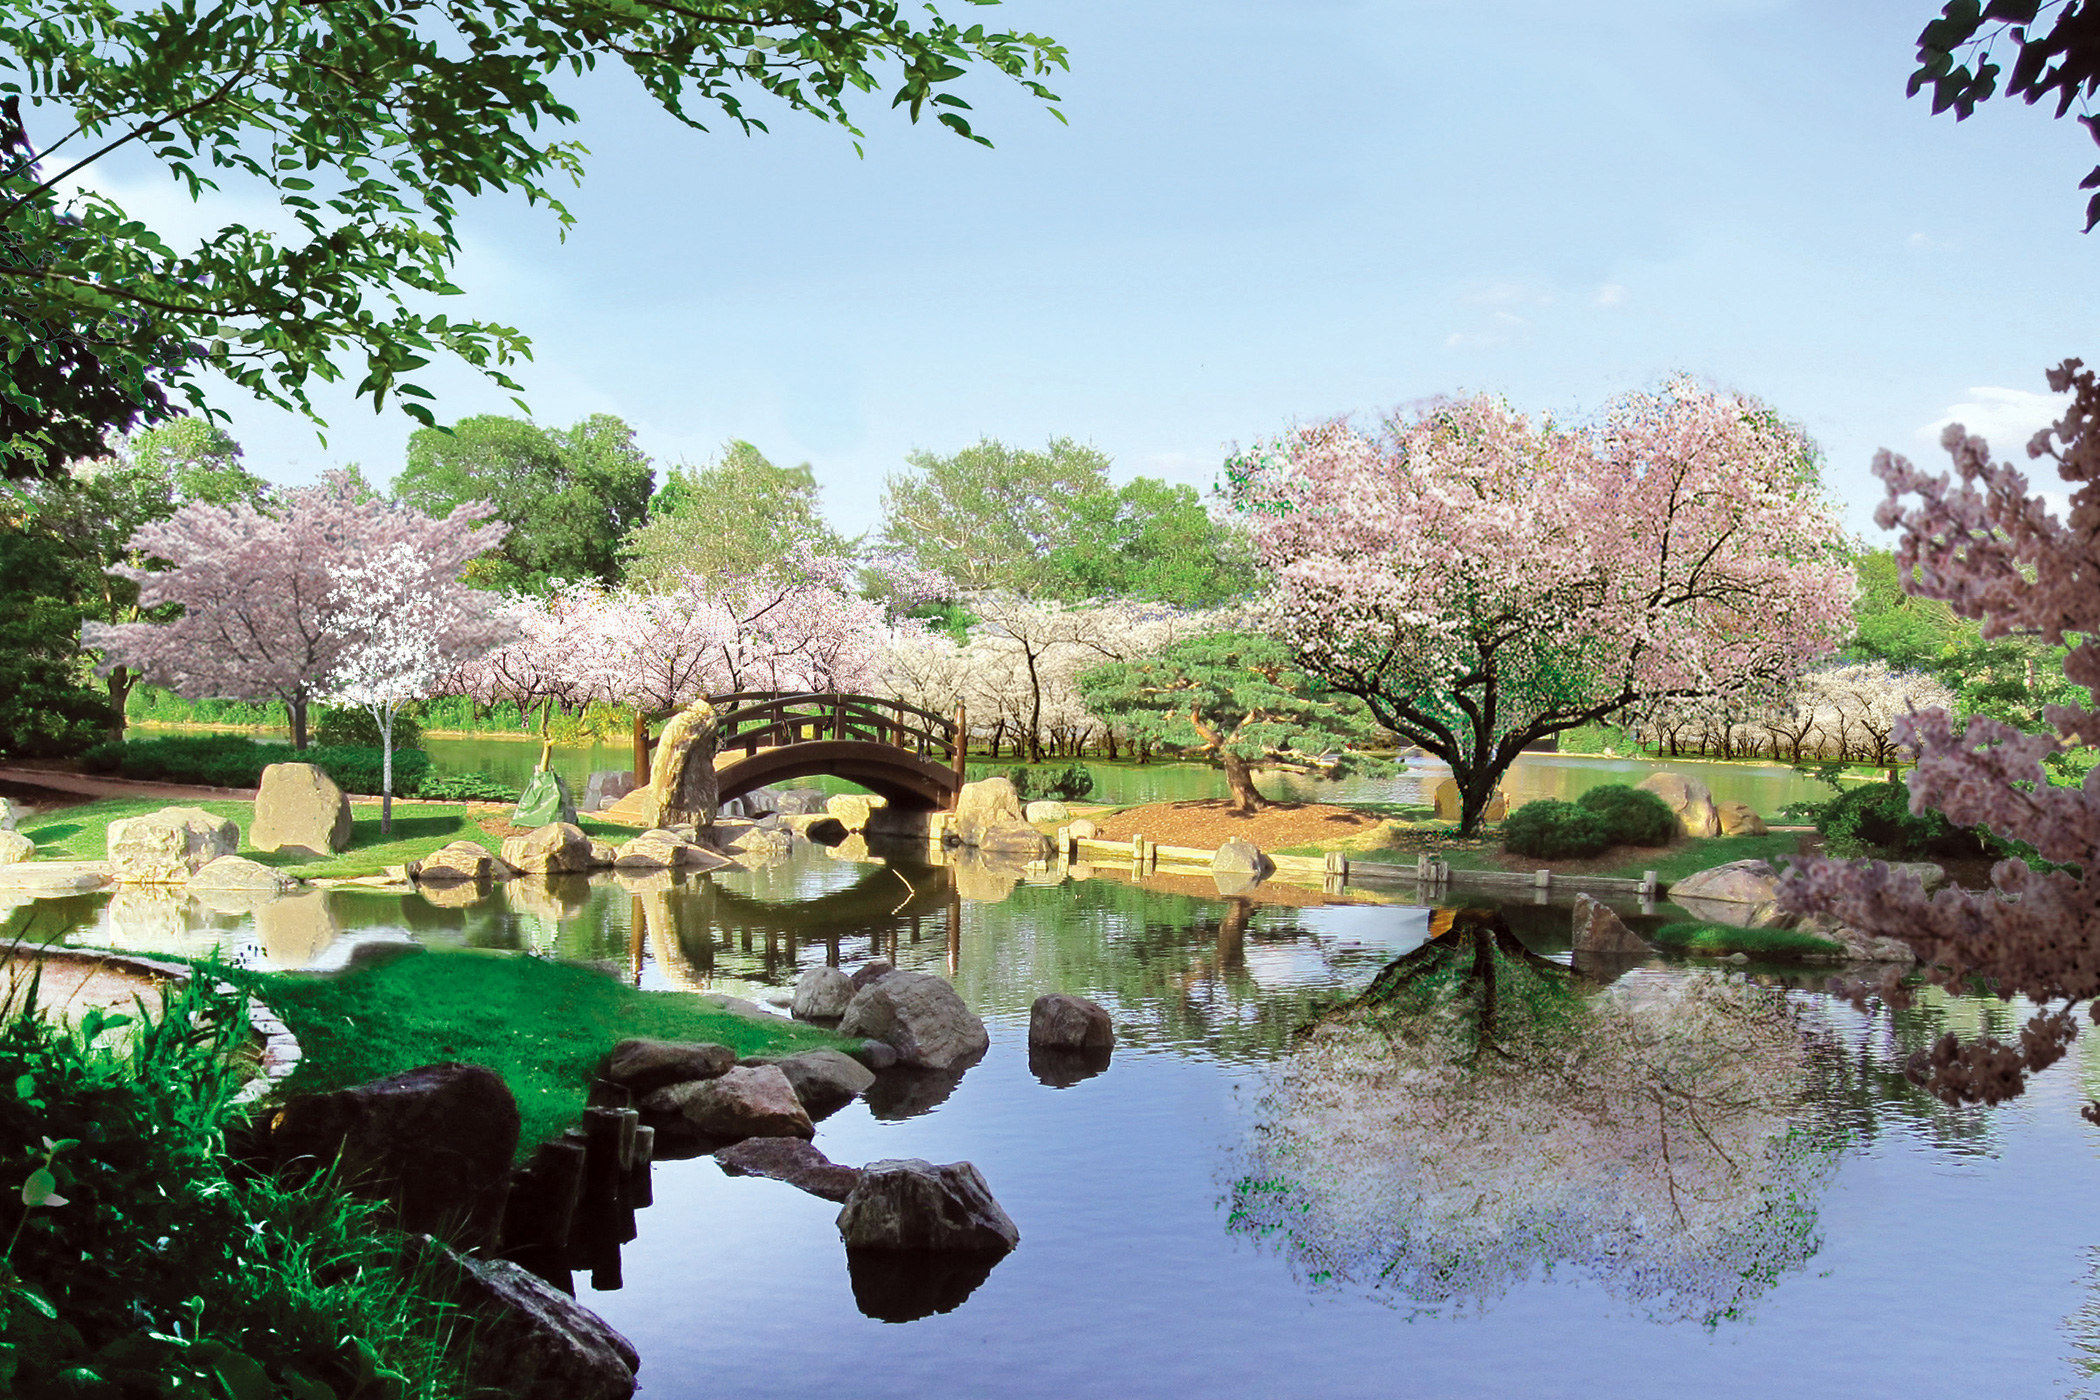 A Local Lawyer Is Hoping To Restore The Japanese Gardens In Jackson Park To  Their Former Glory, One Cherry Tree At A Time